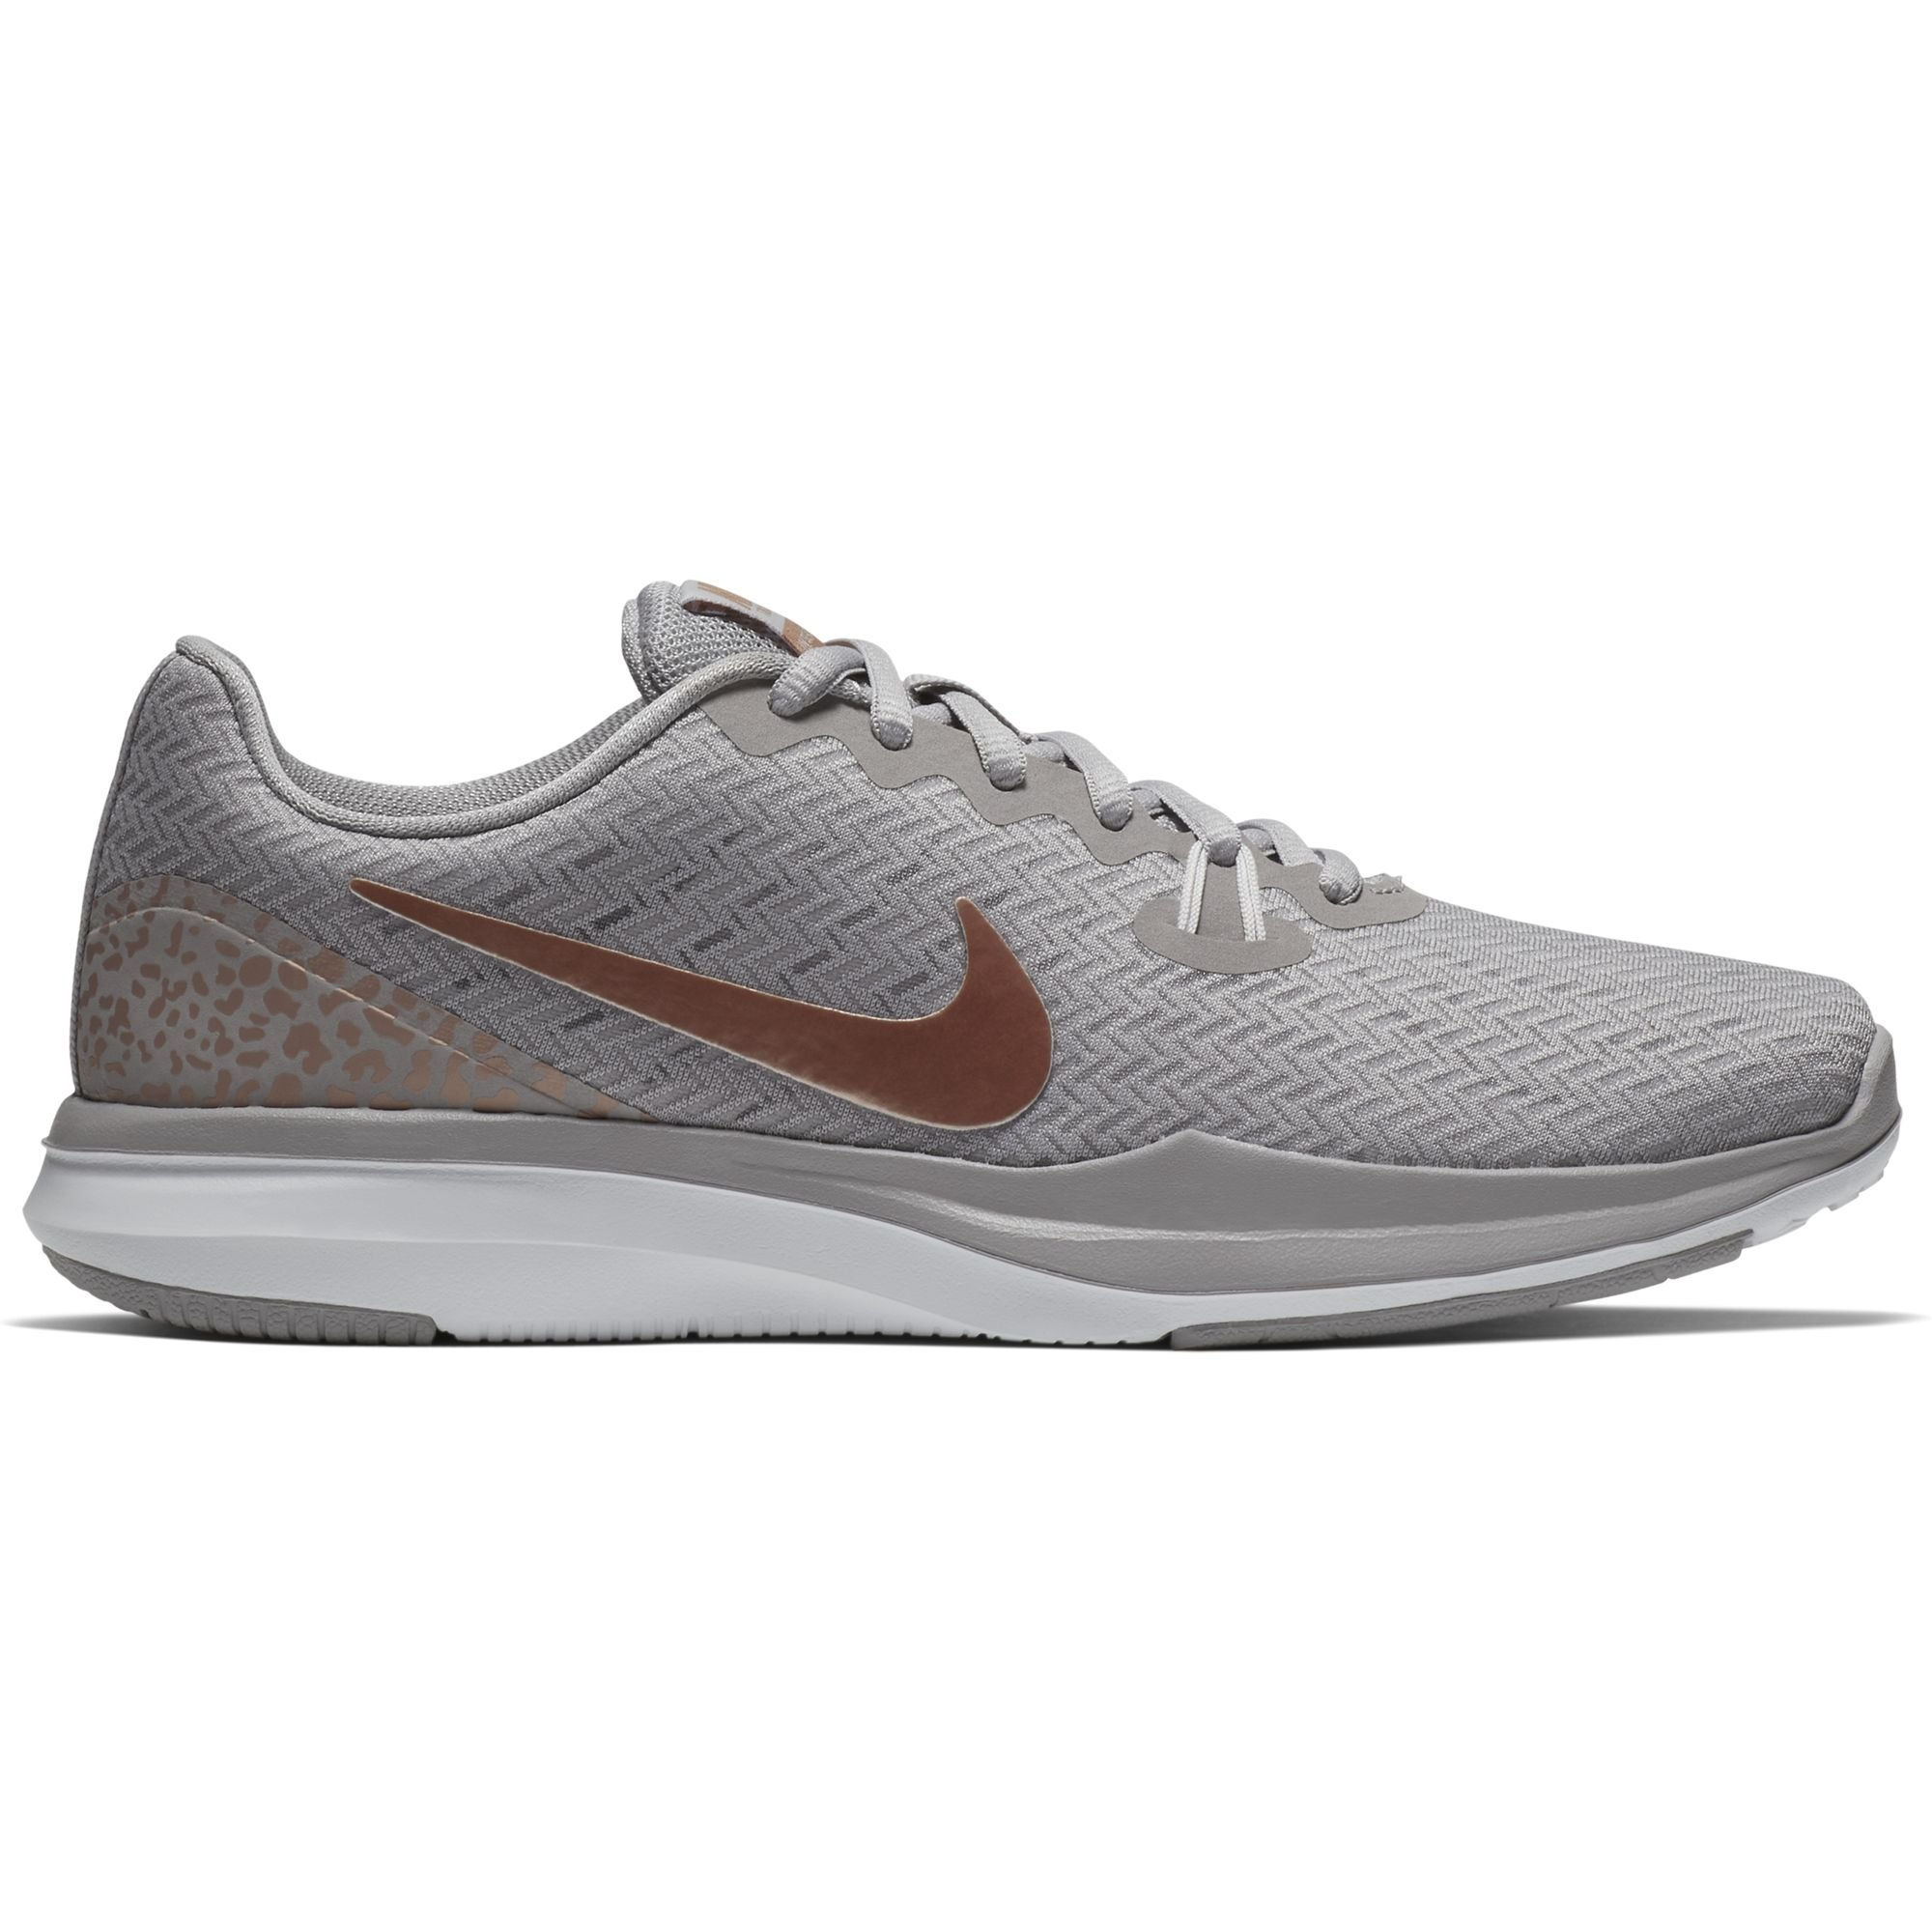 Nike Women's in-Season 7 Print Training Shoe Atmosphere Grey/Metallic Red Bronze Size 10 M US